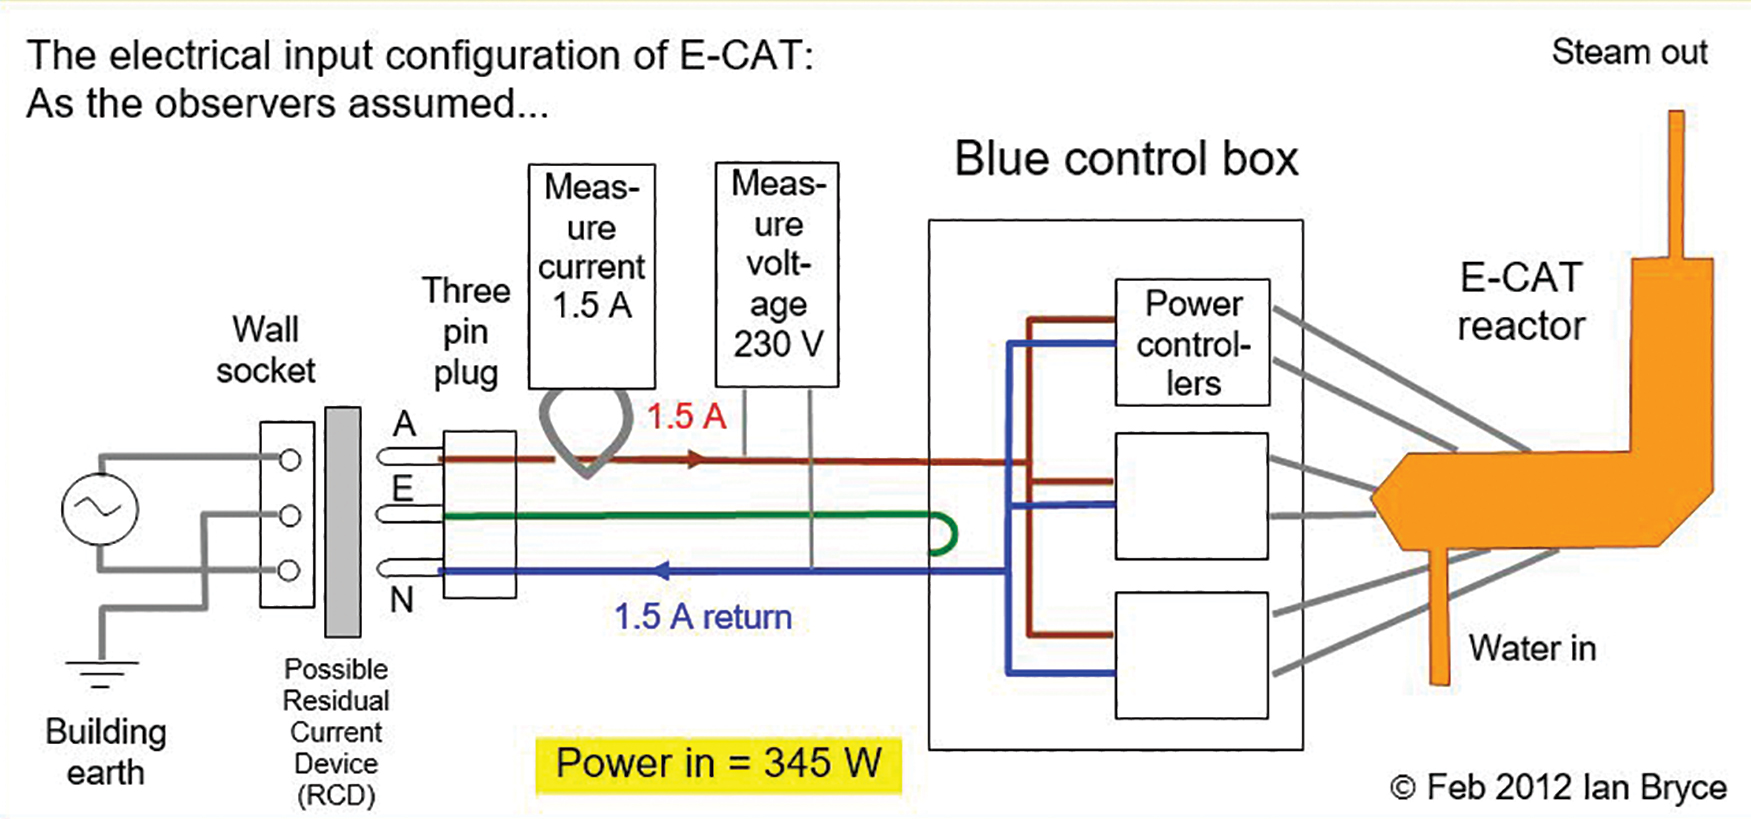 Rossi's E-Cat: Exposé of a Claimed Cold Fusion Device | Skeptical